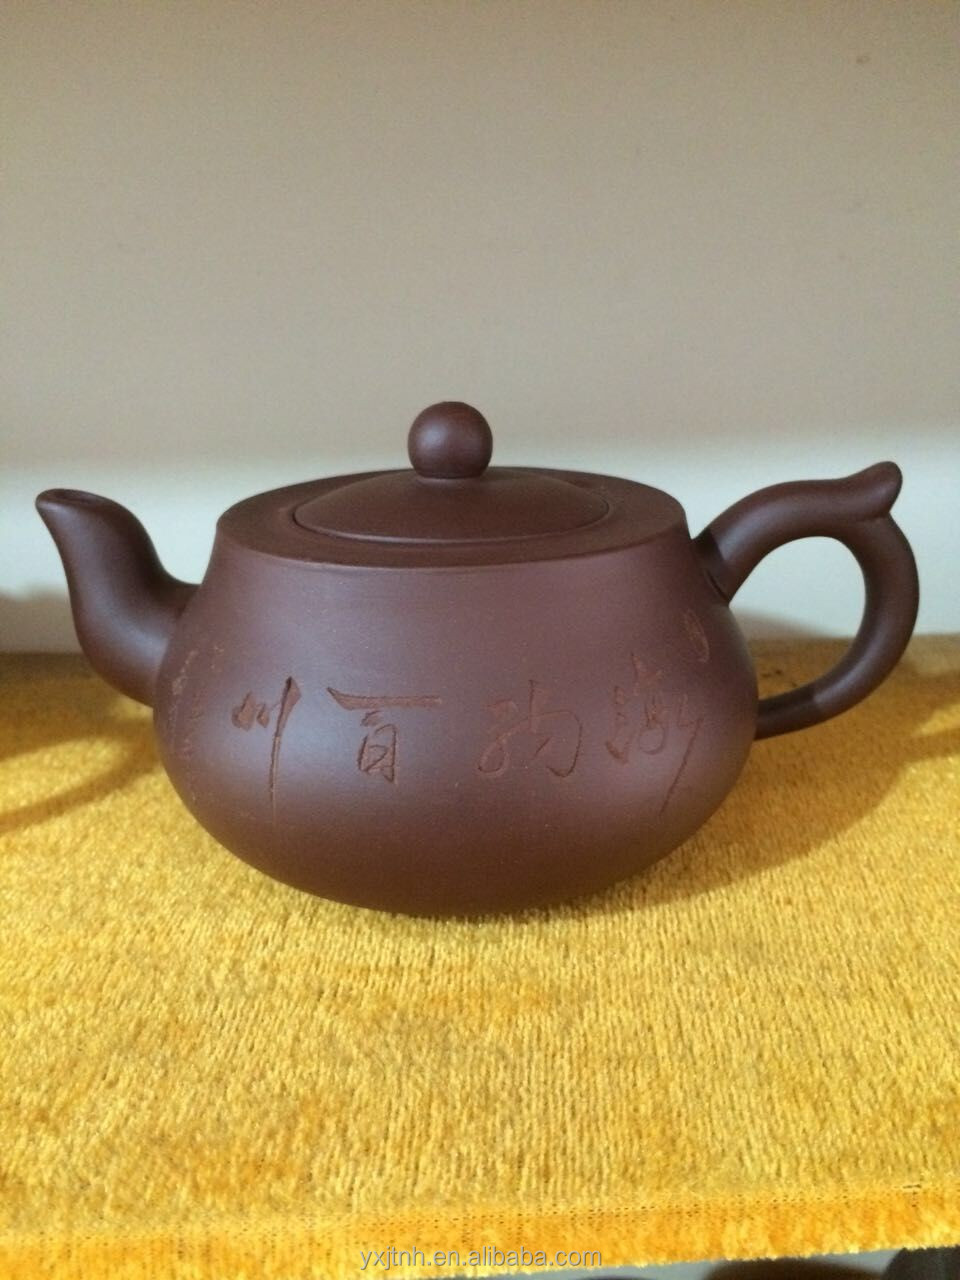 Yixing clay teapot set for sale